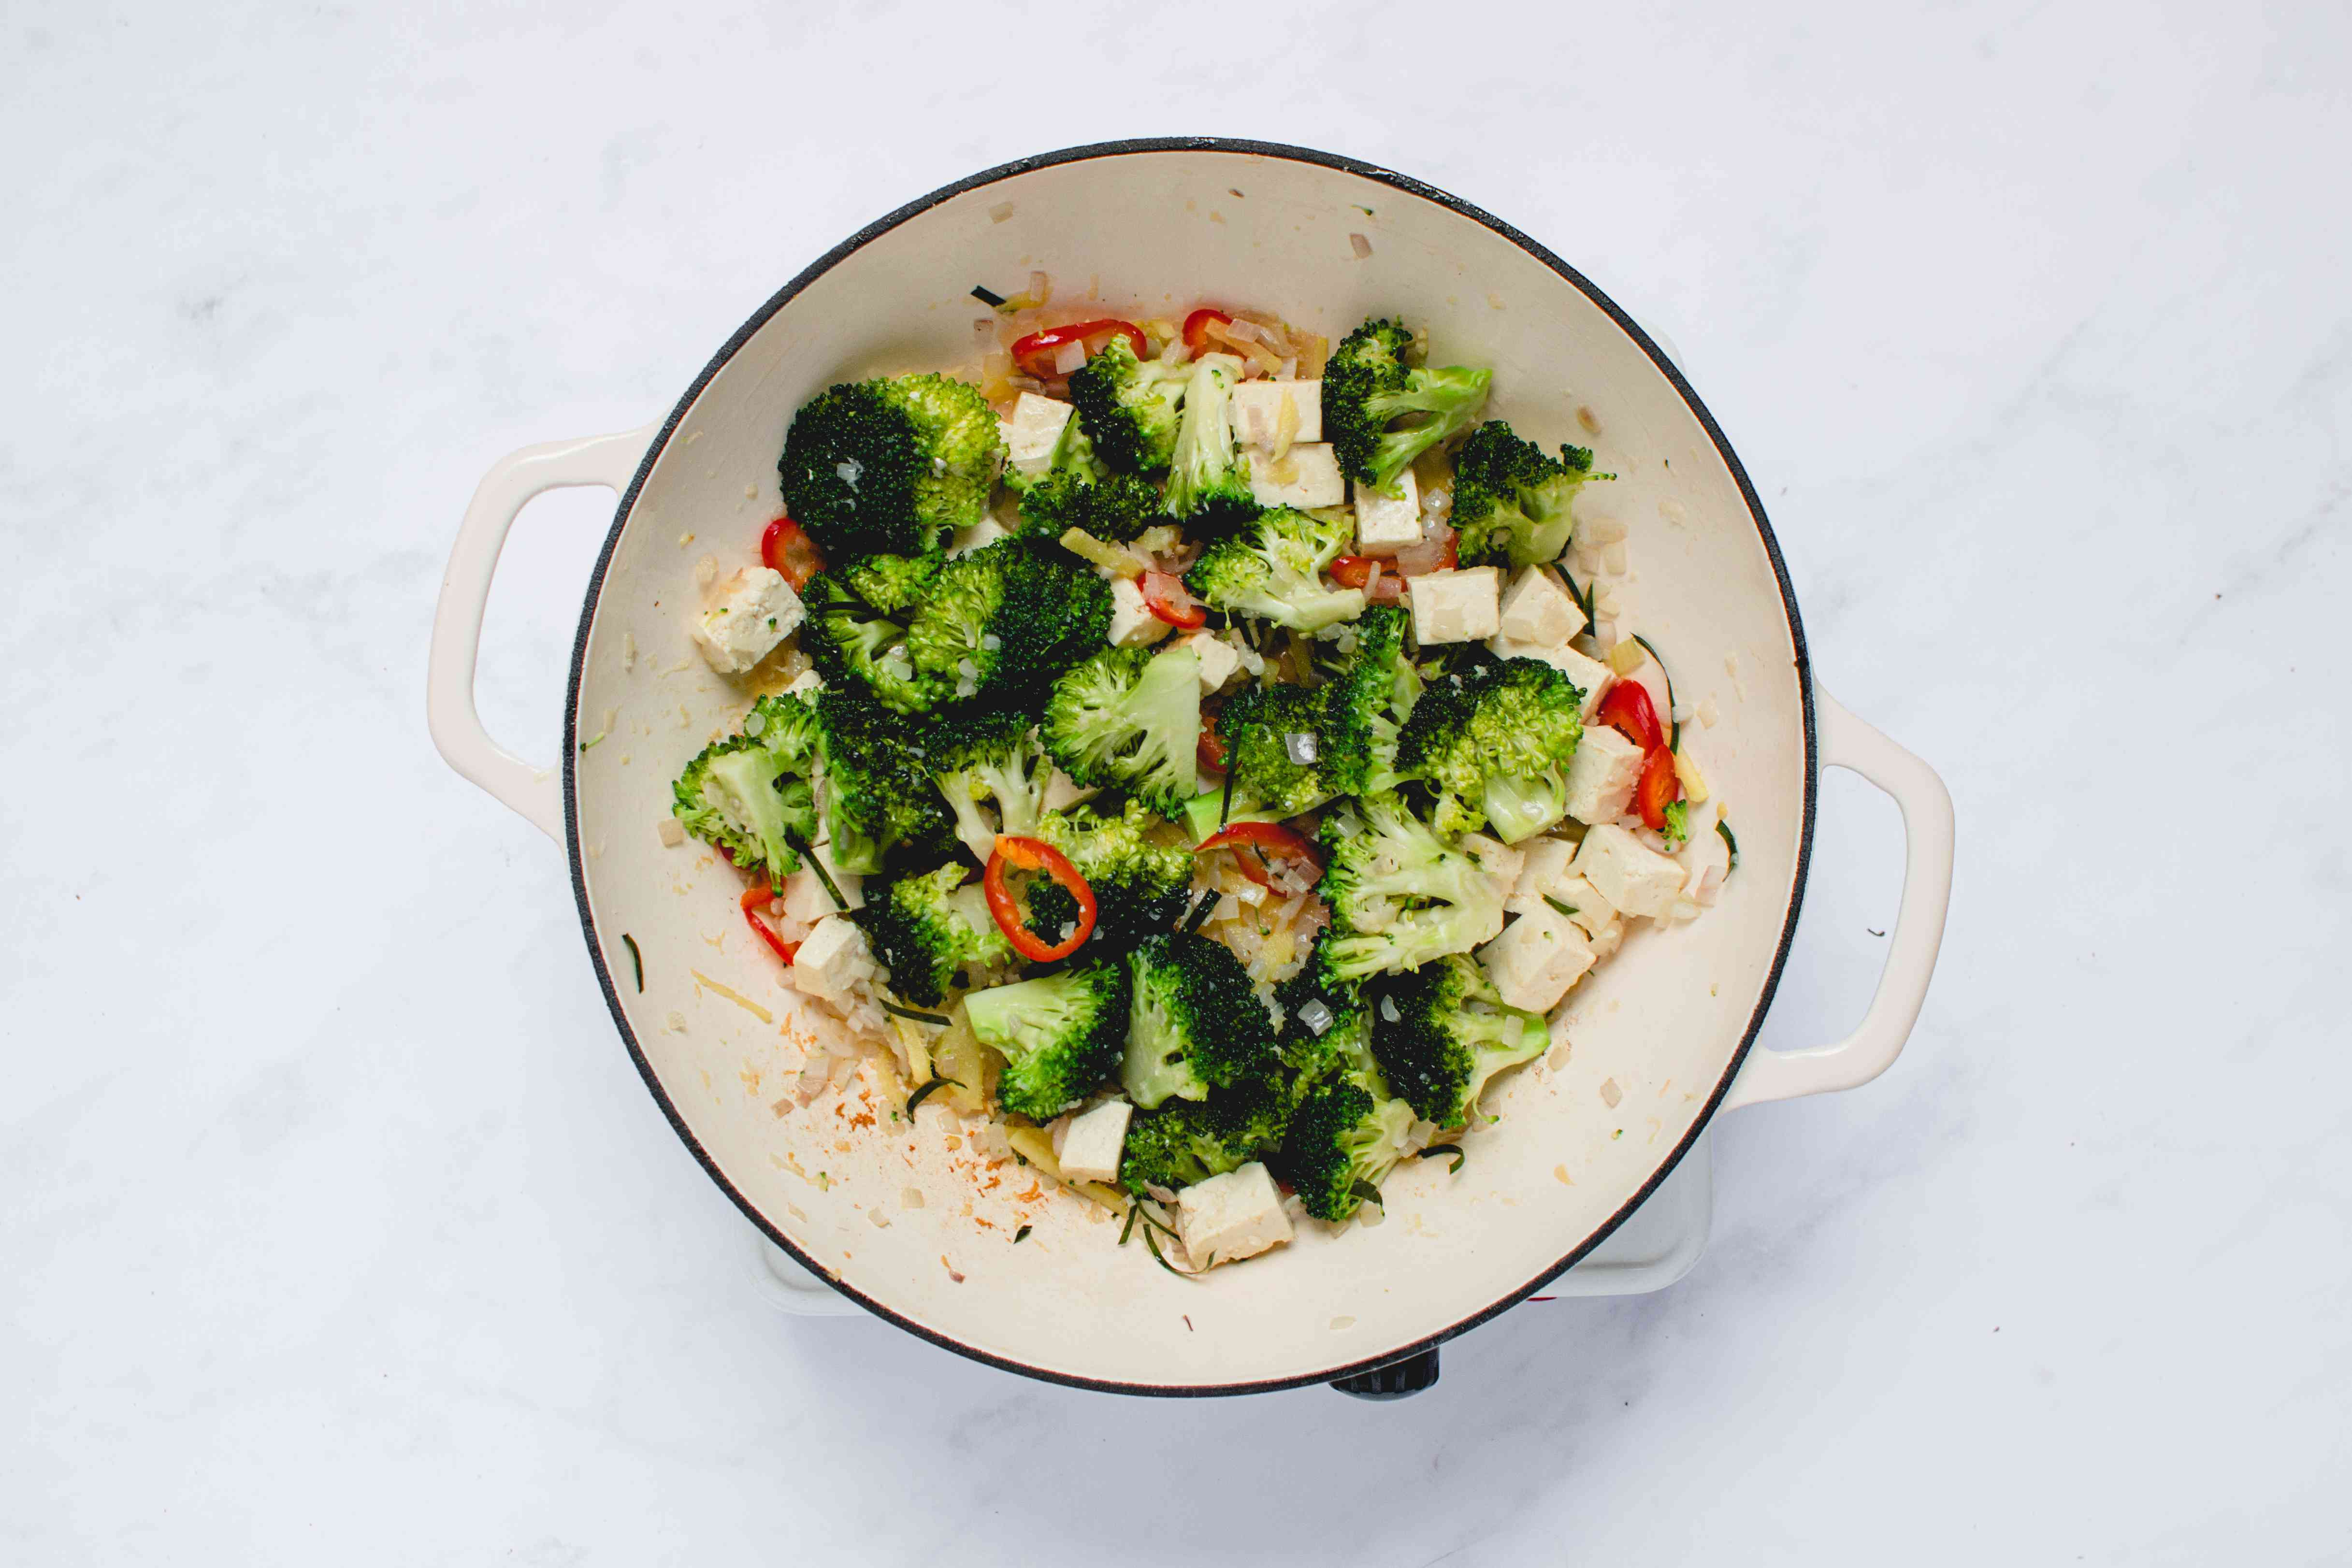 Add the broccoli to the tofu mixture in the pan